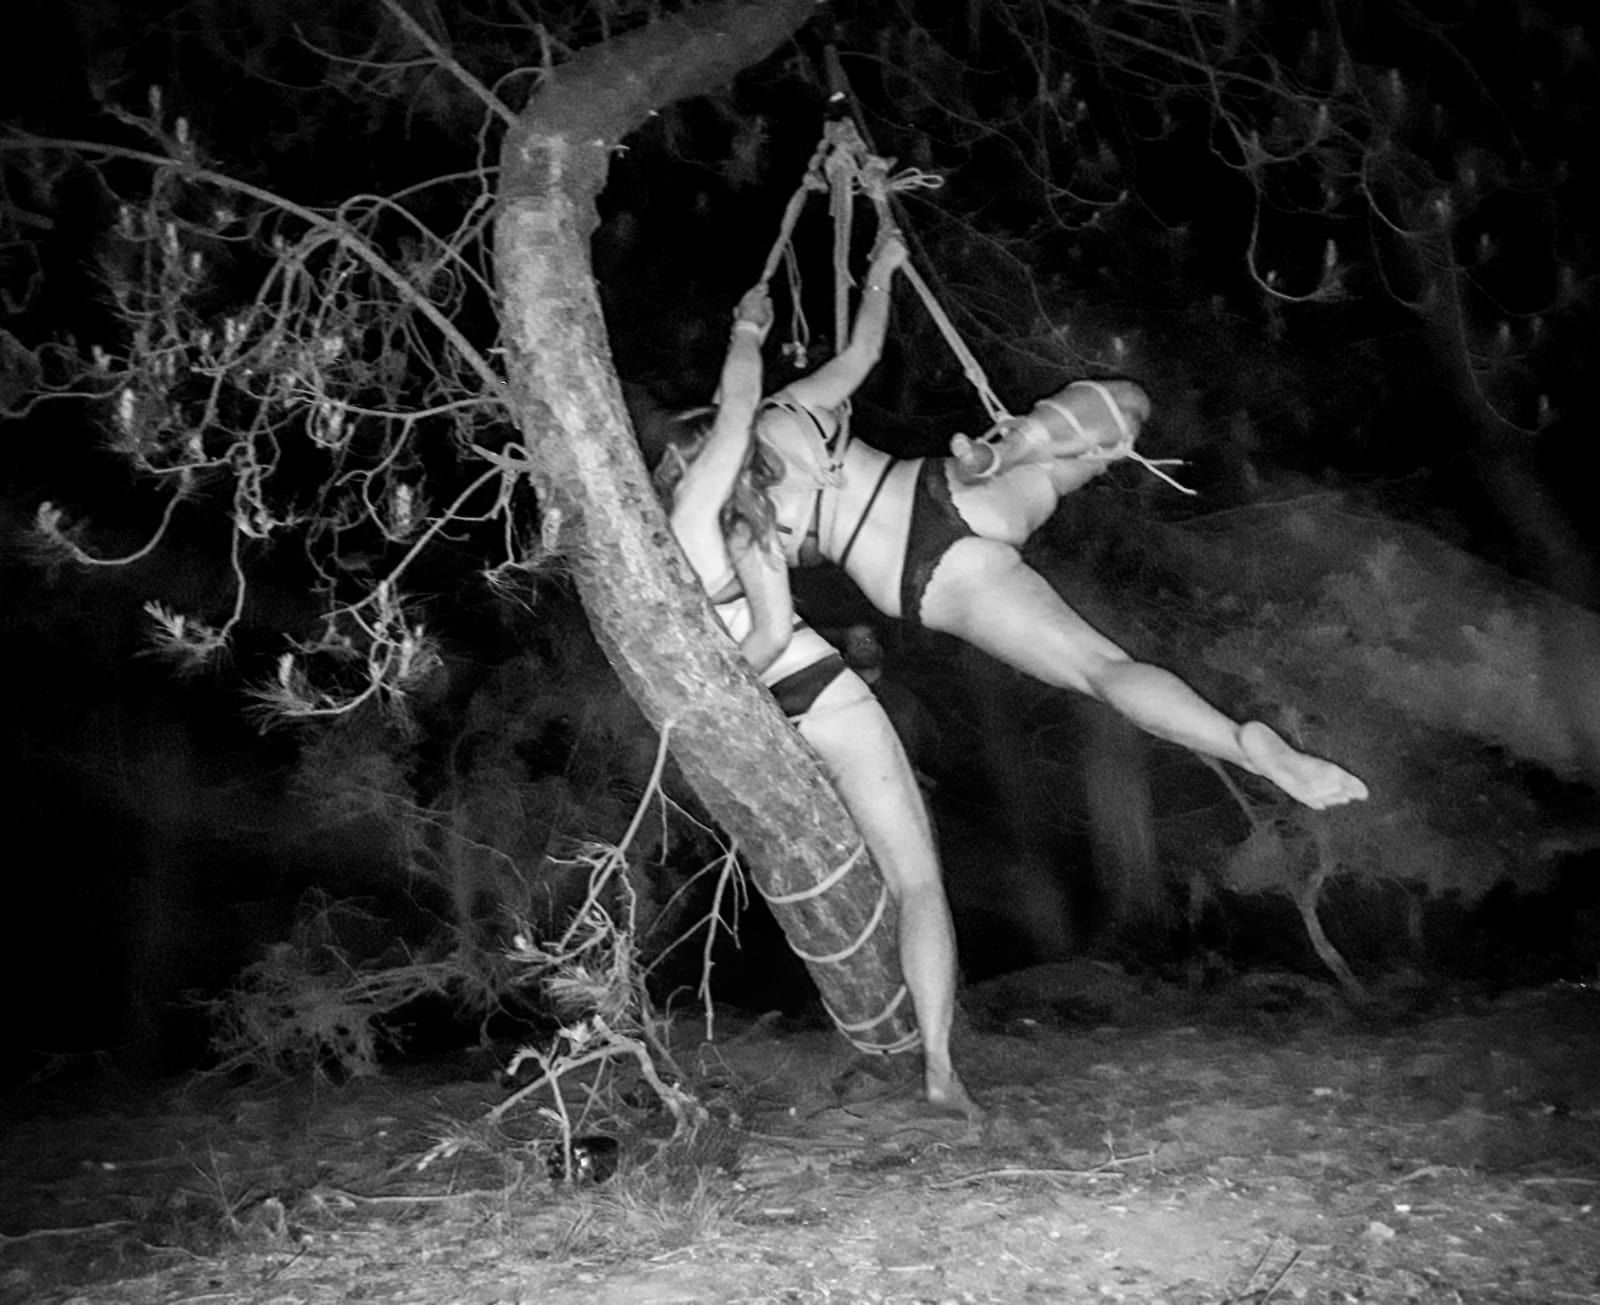 Black and White image of two girls tied in a tree